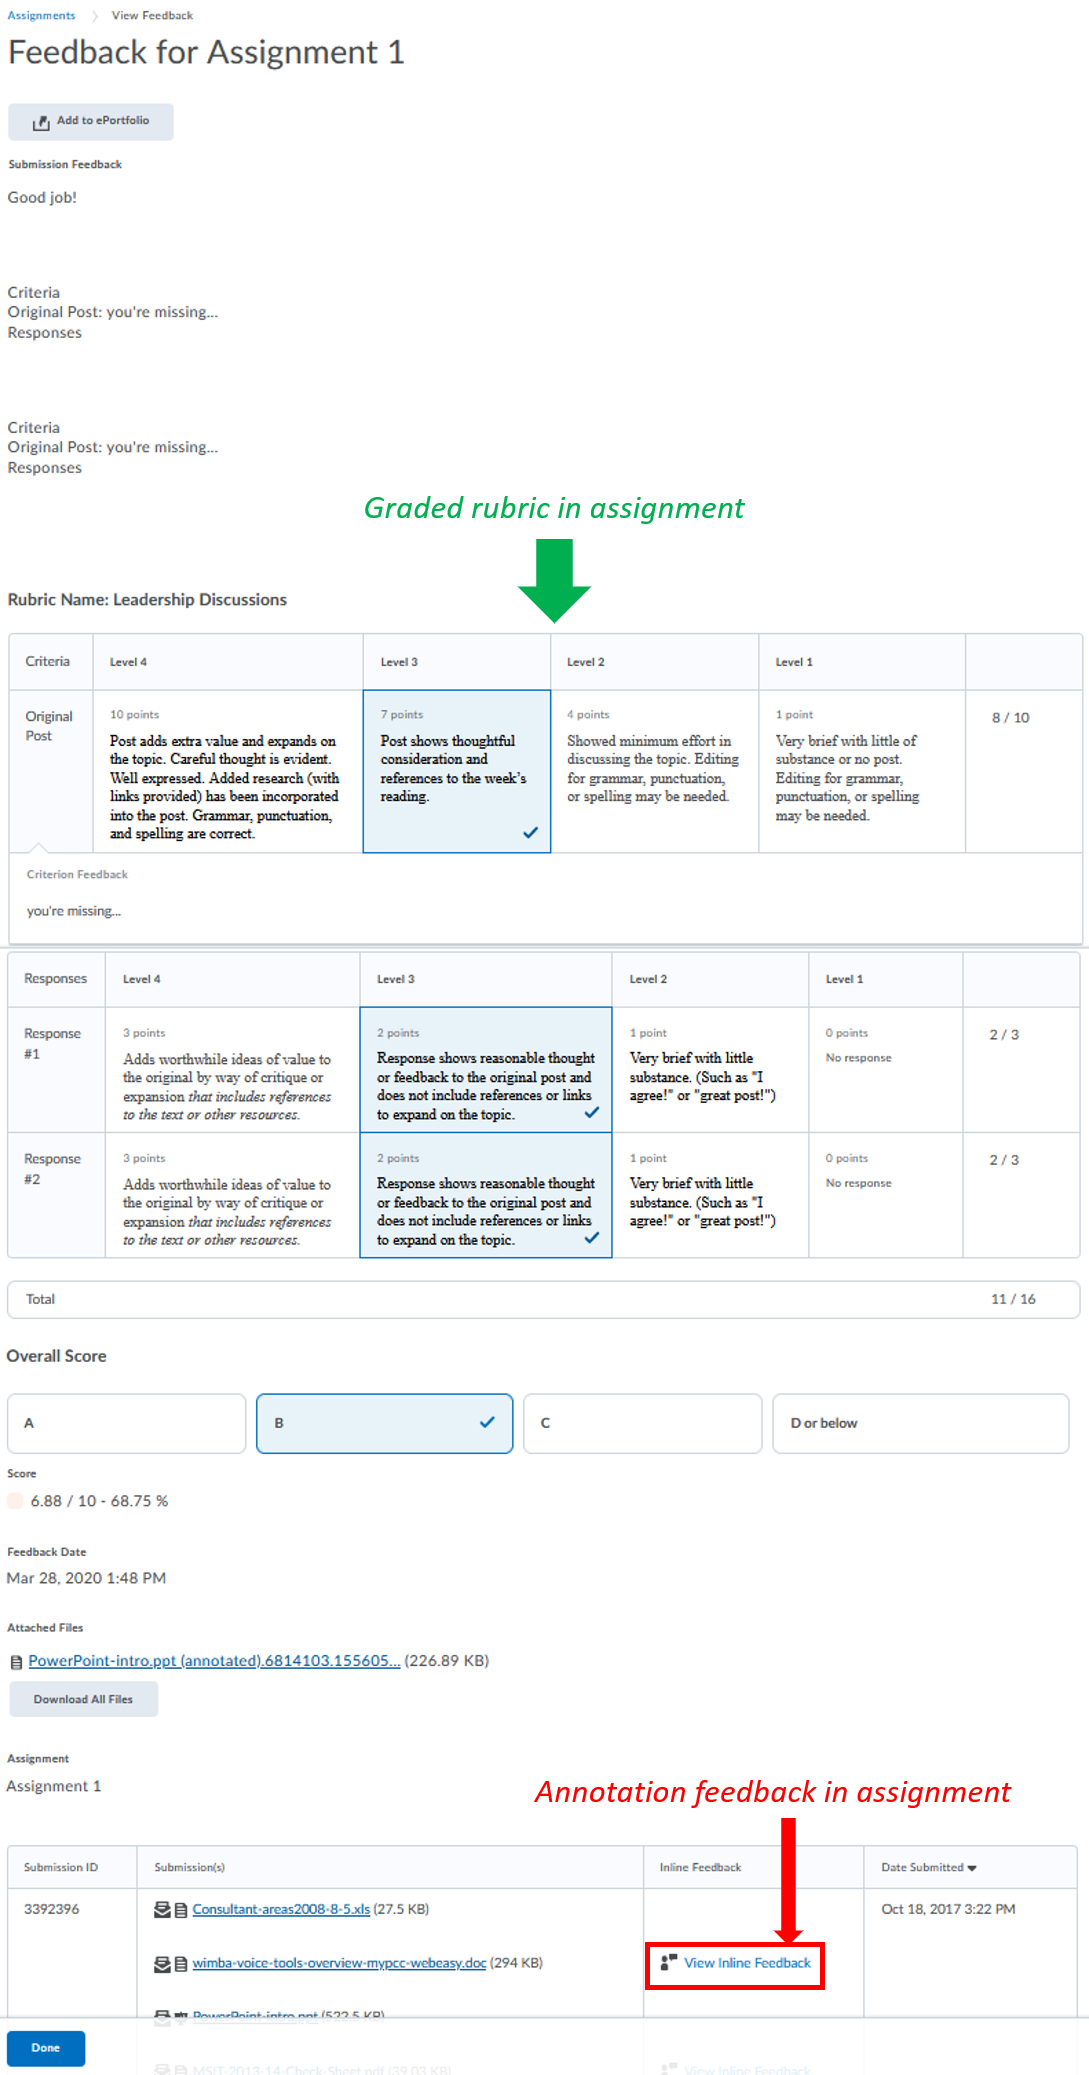 student-view-graded-rubric-annotation-assignment_in Assignments